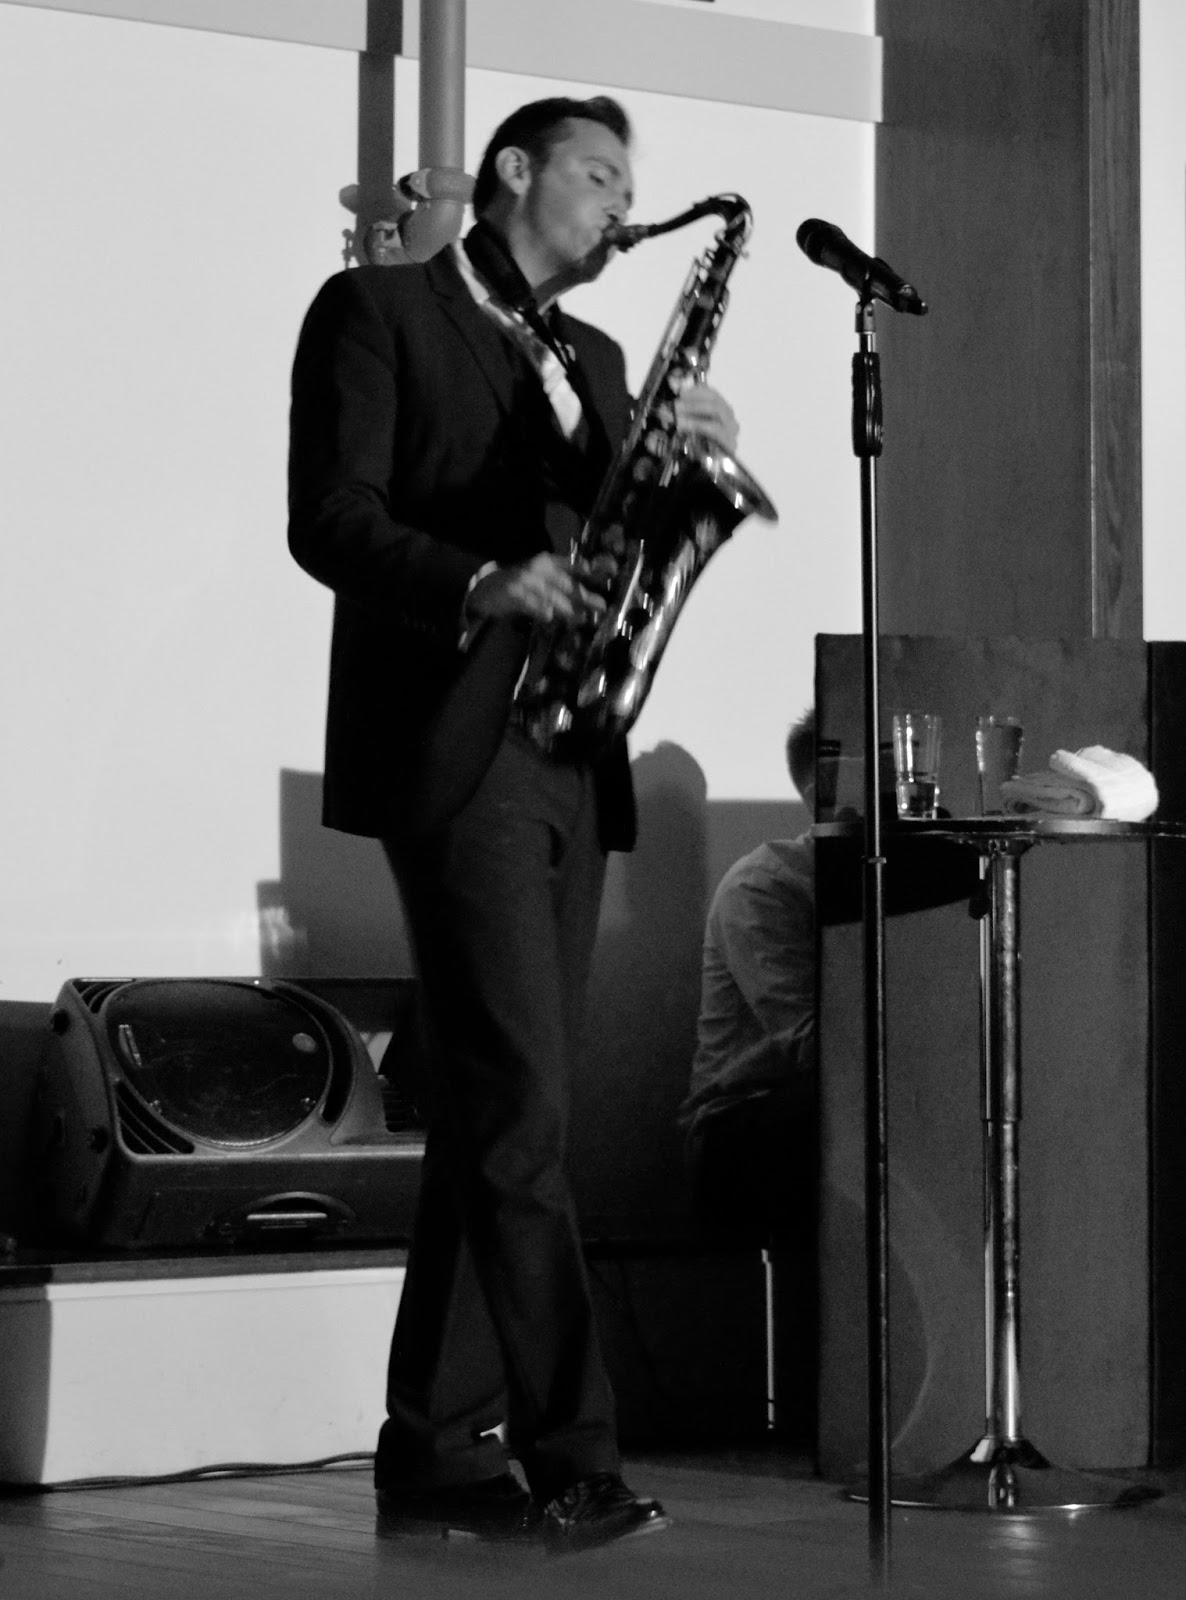 A grown-up date night at Doubletree by Hilton Newcastle Airport with a night of swing and sax with Jason Isaacs in the function room.  - Jason playing sax